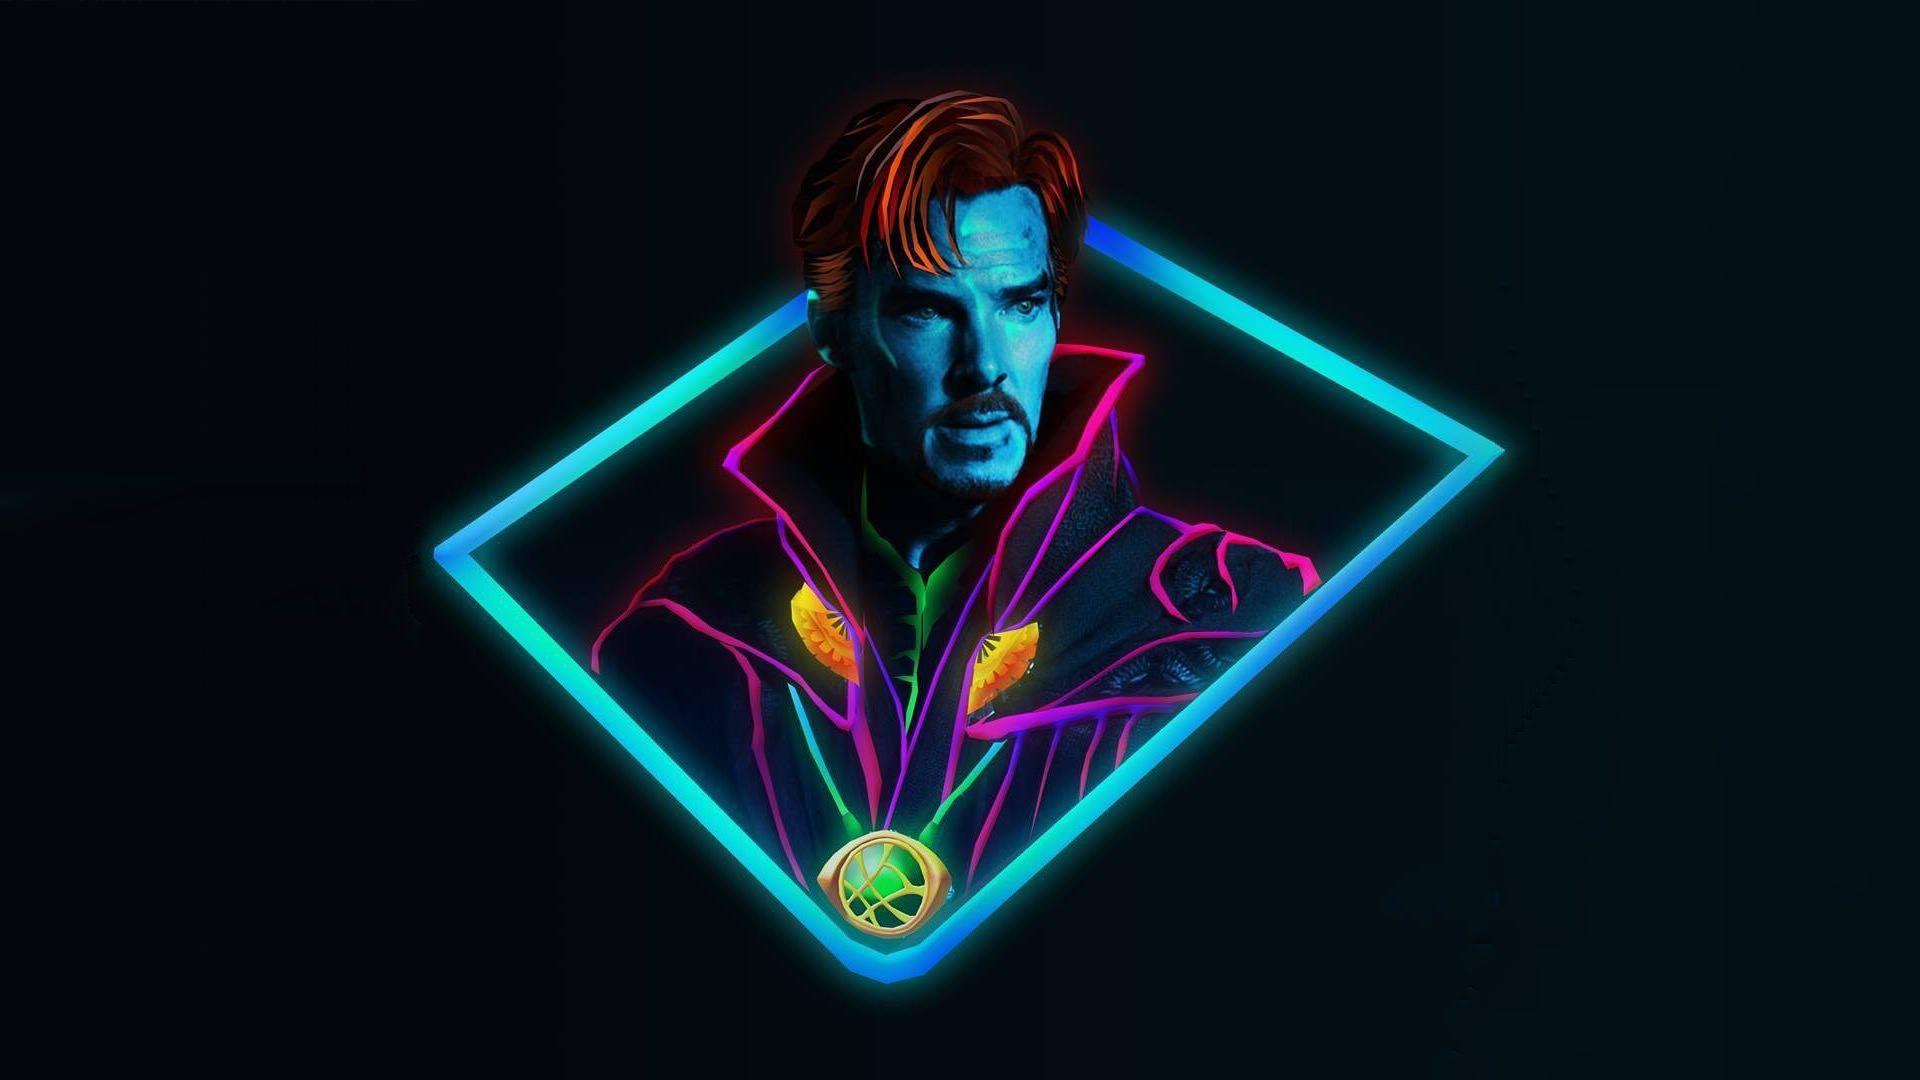 Neon Avengers 1920x1080 Desktop Wallpapers Based On Artwork By Aniketjatav On Instagram Avengers Wallpaper Marvel Wallpaper Avengers Pictures